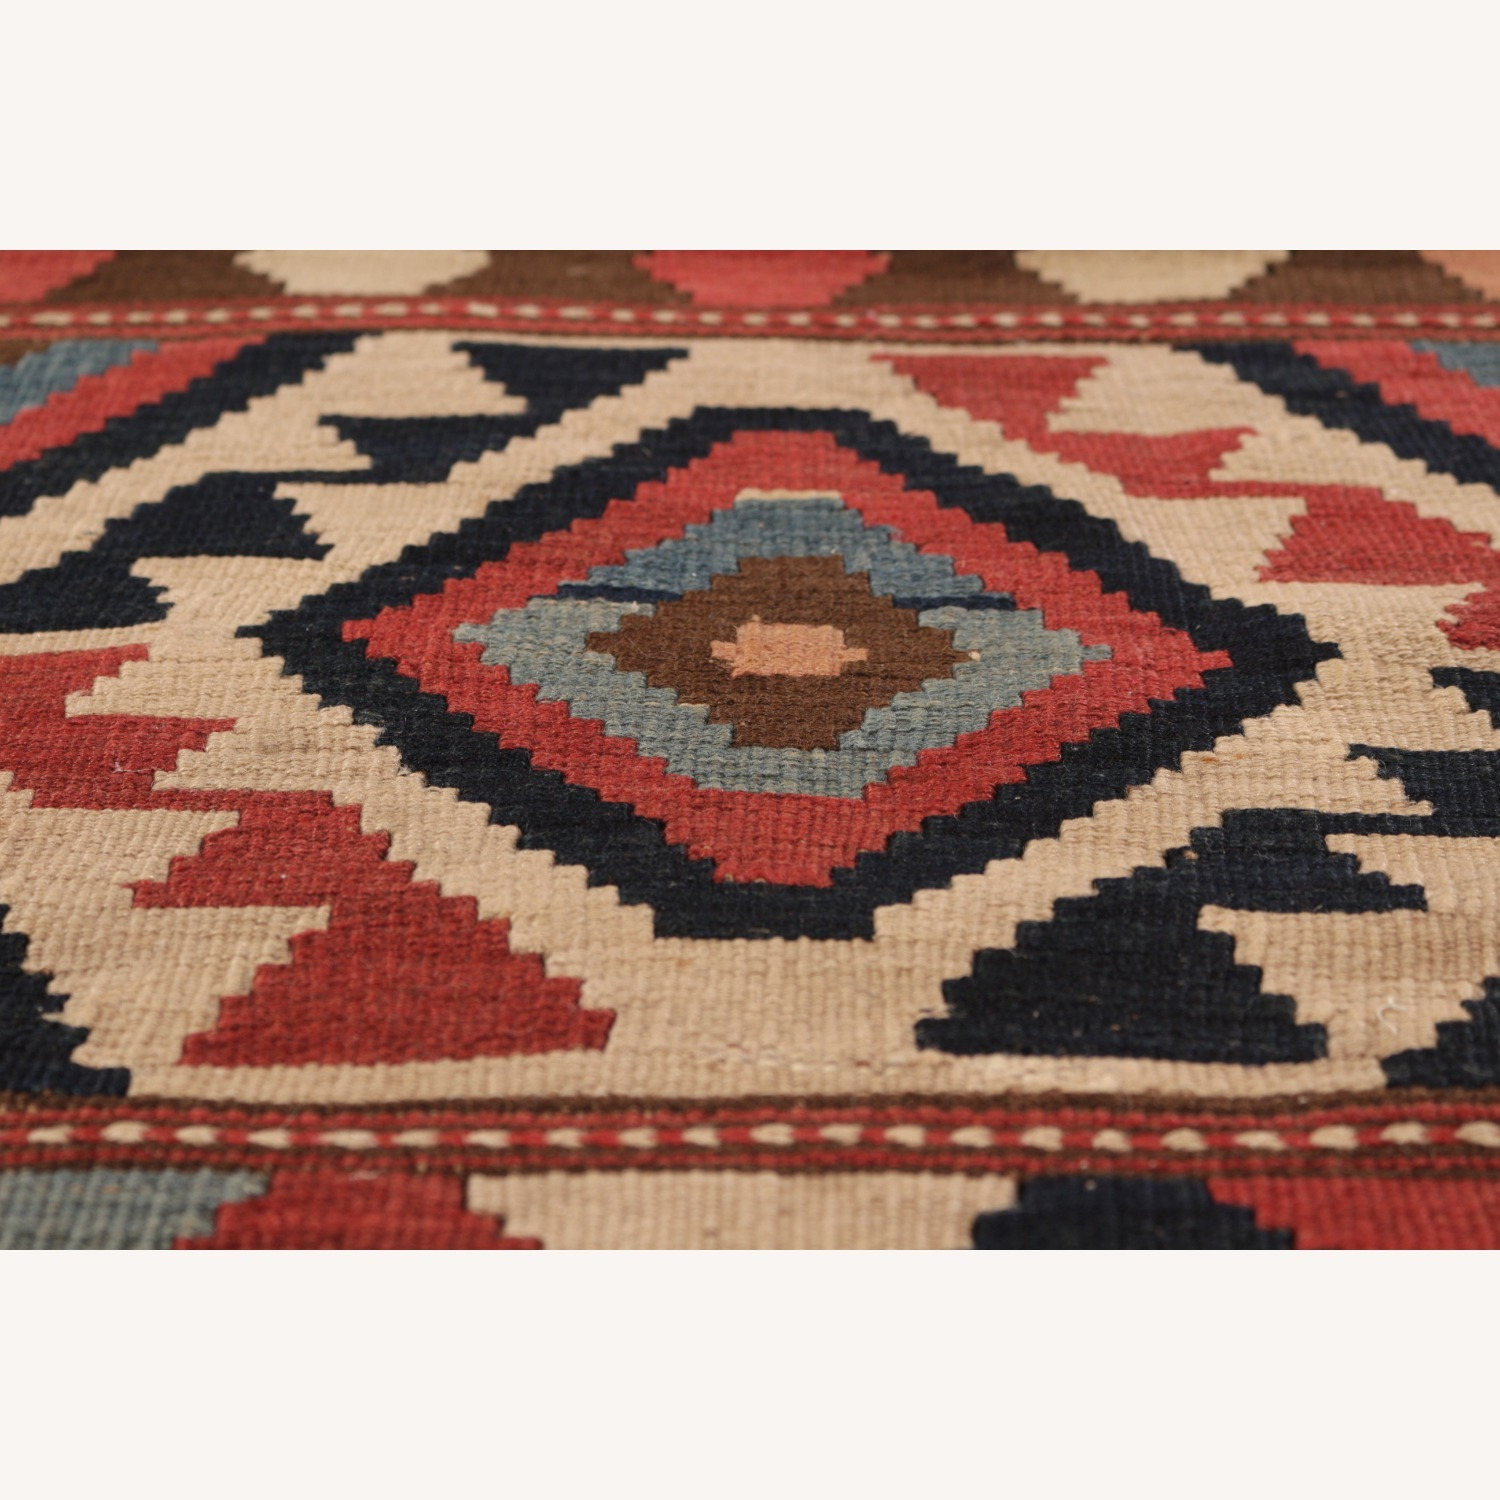 Antique Shahsavan Rug Transitional Tribal Pattern - image-5